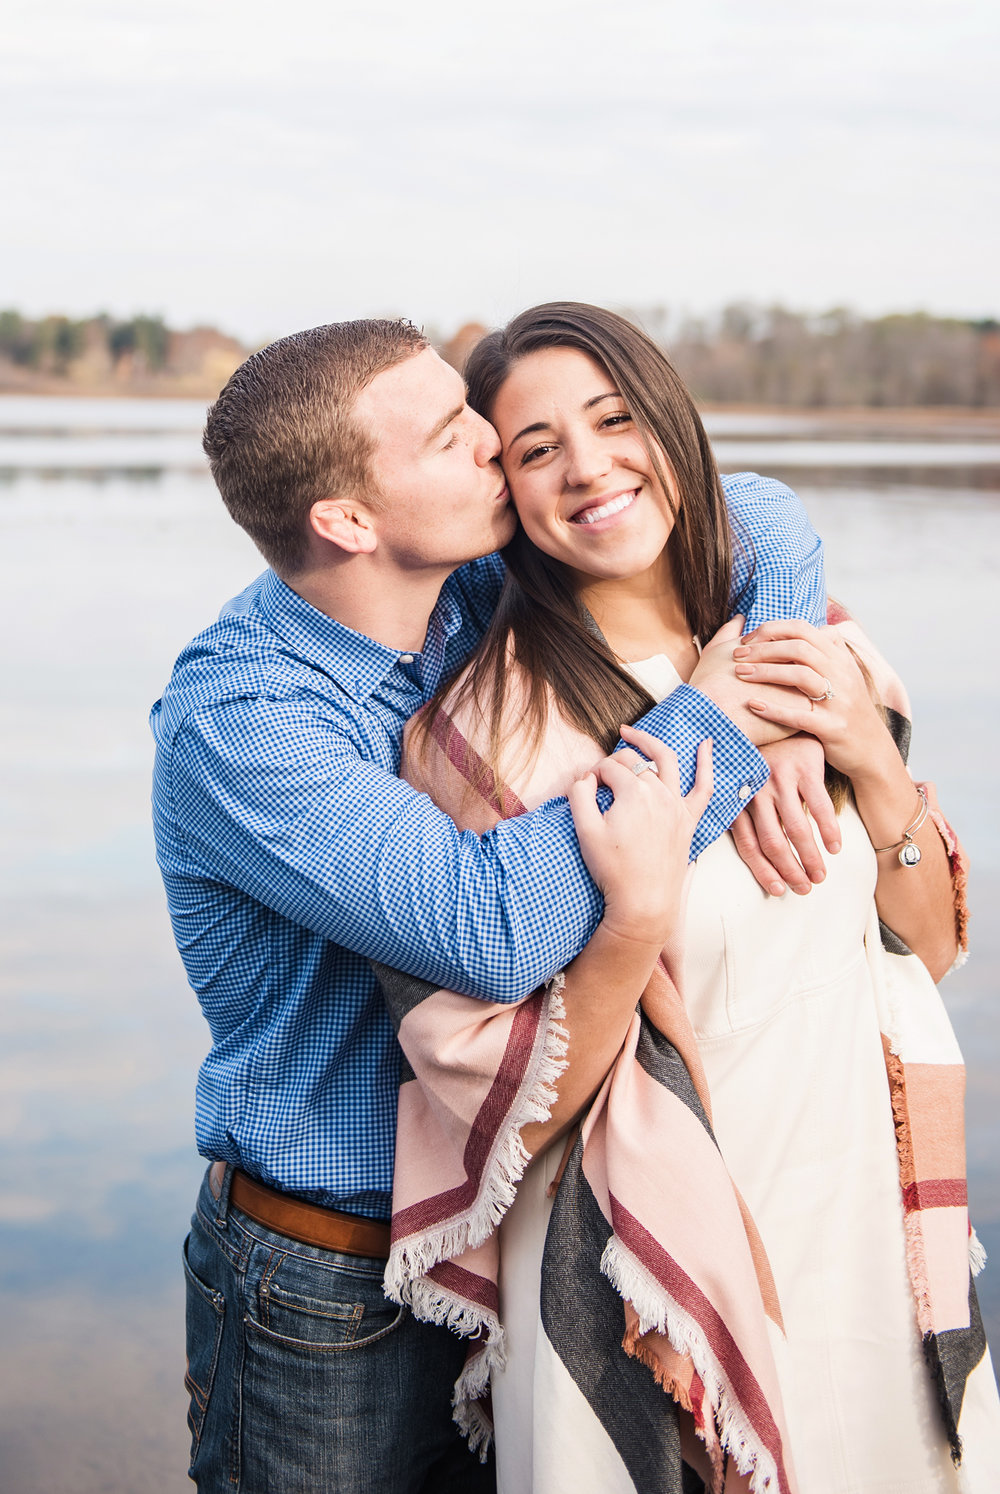 Mendon_Ponds_Park_Rochester_Engagement_Session_JILL_STUDIO_Rochester_NY_Photographer_DSC_0112.jpg